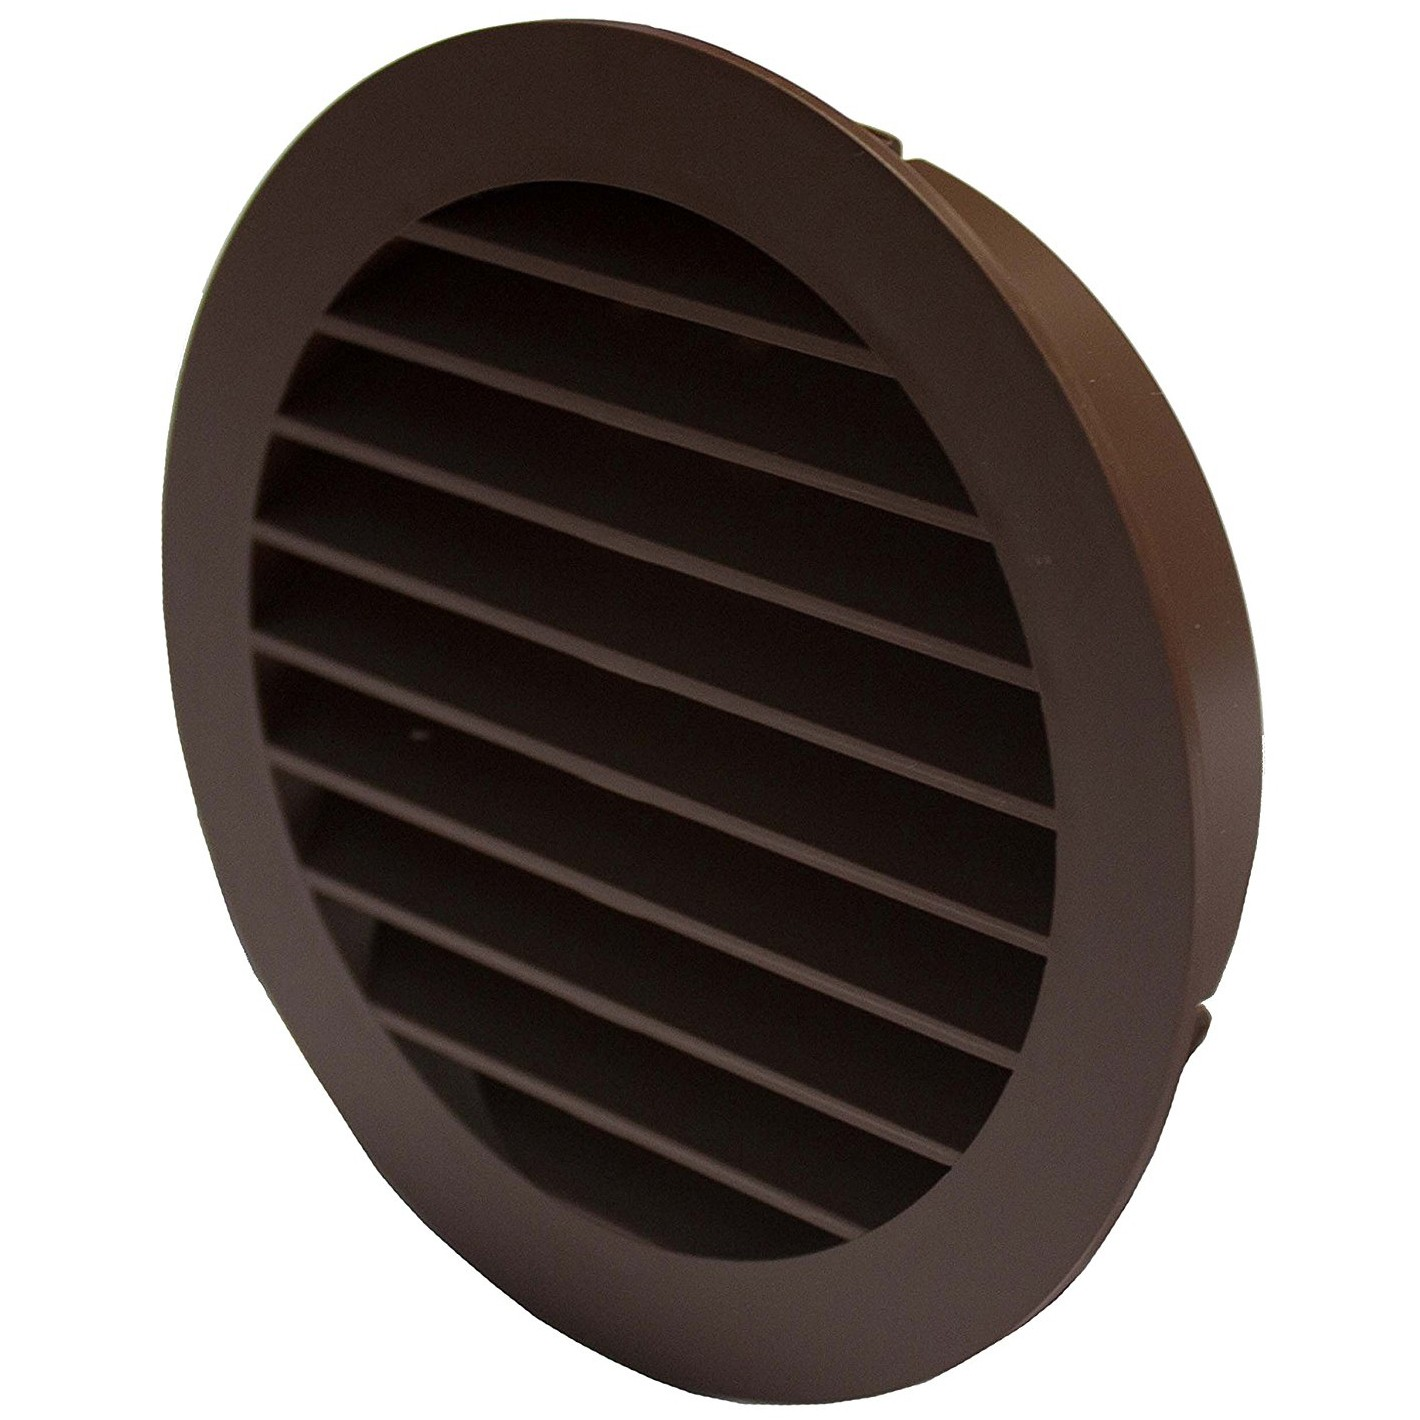 Manrose External Round Louvred Grille Outlet - Brown, 100mm